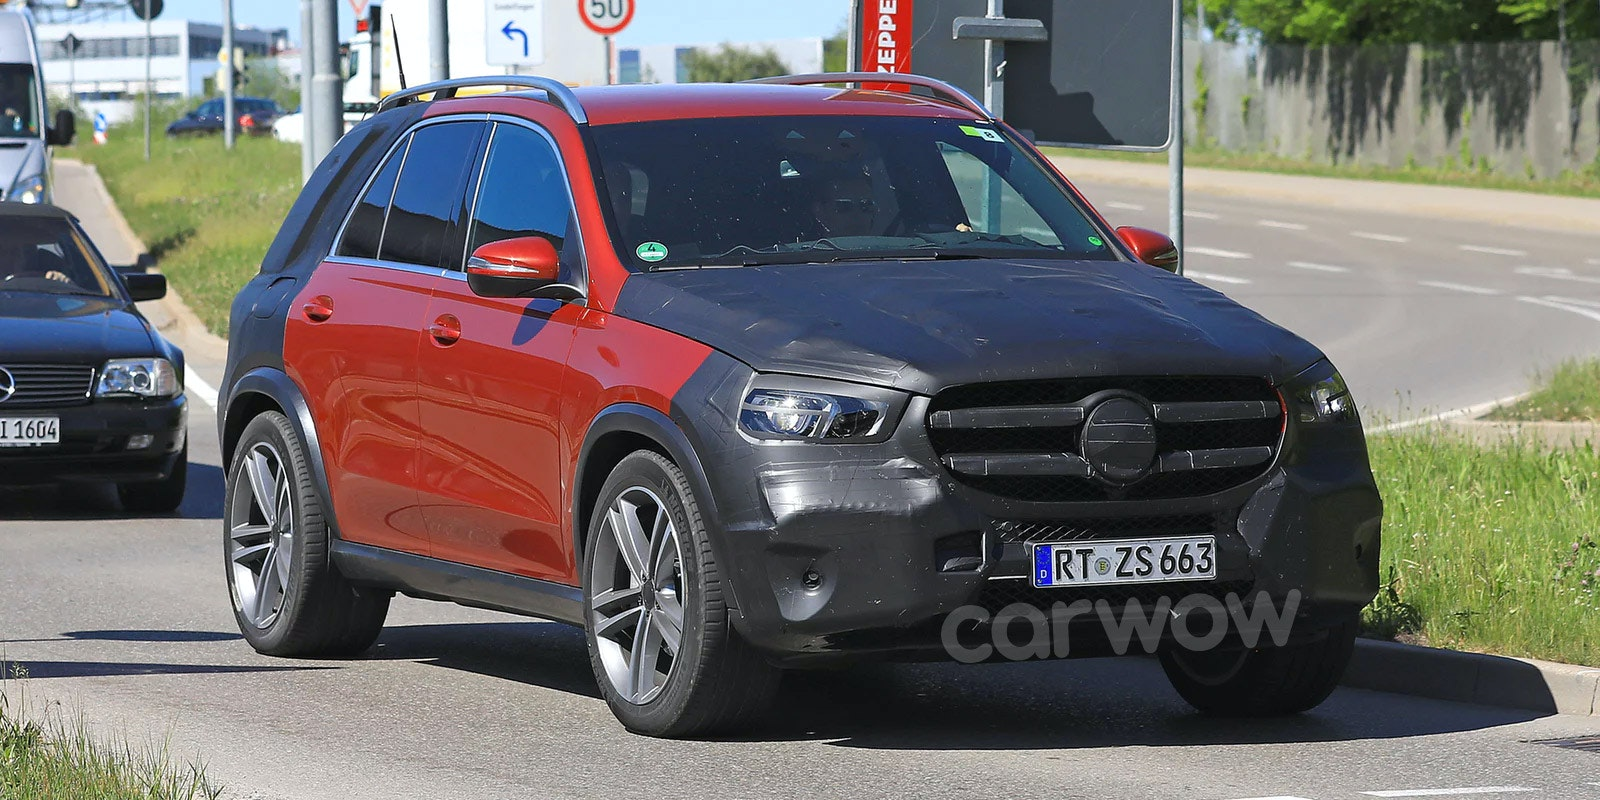 Mercedes gle red prototype driving spyshots lead 1.jpg?ixlib=rb 1.1